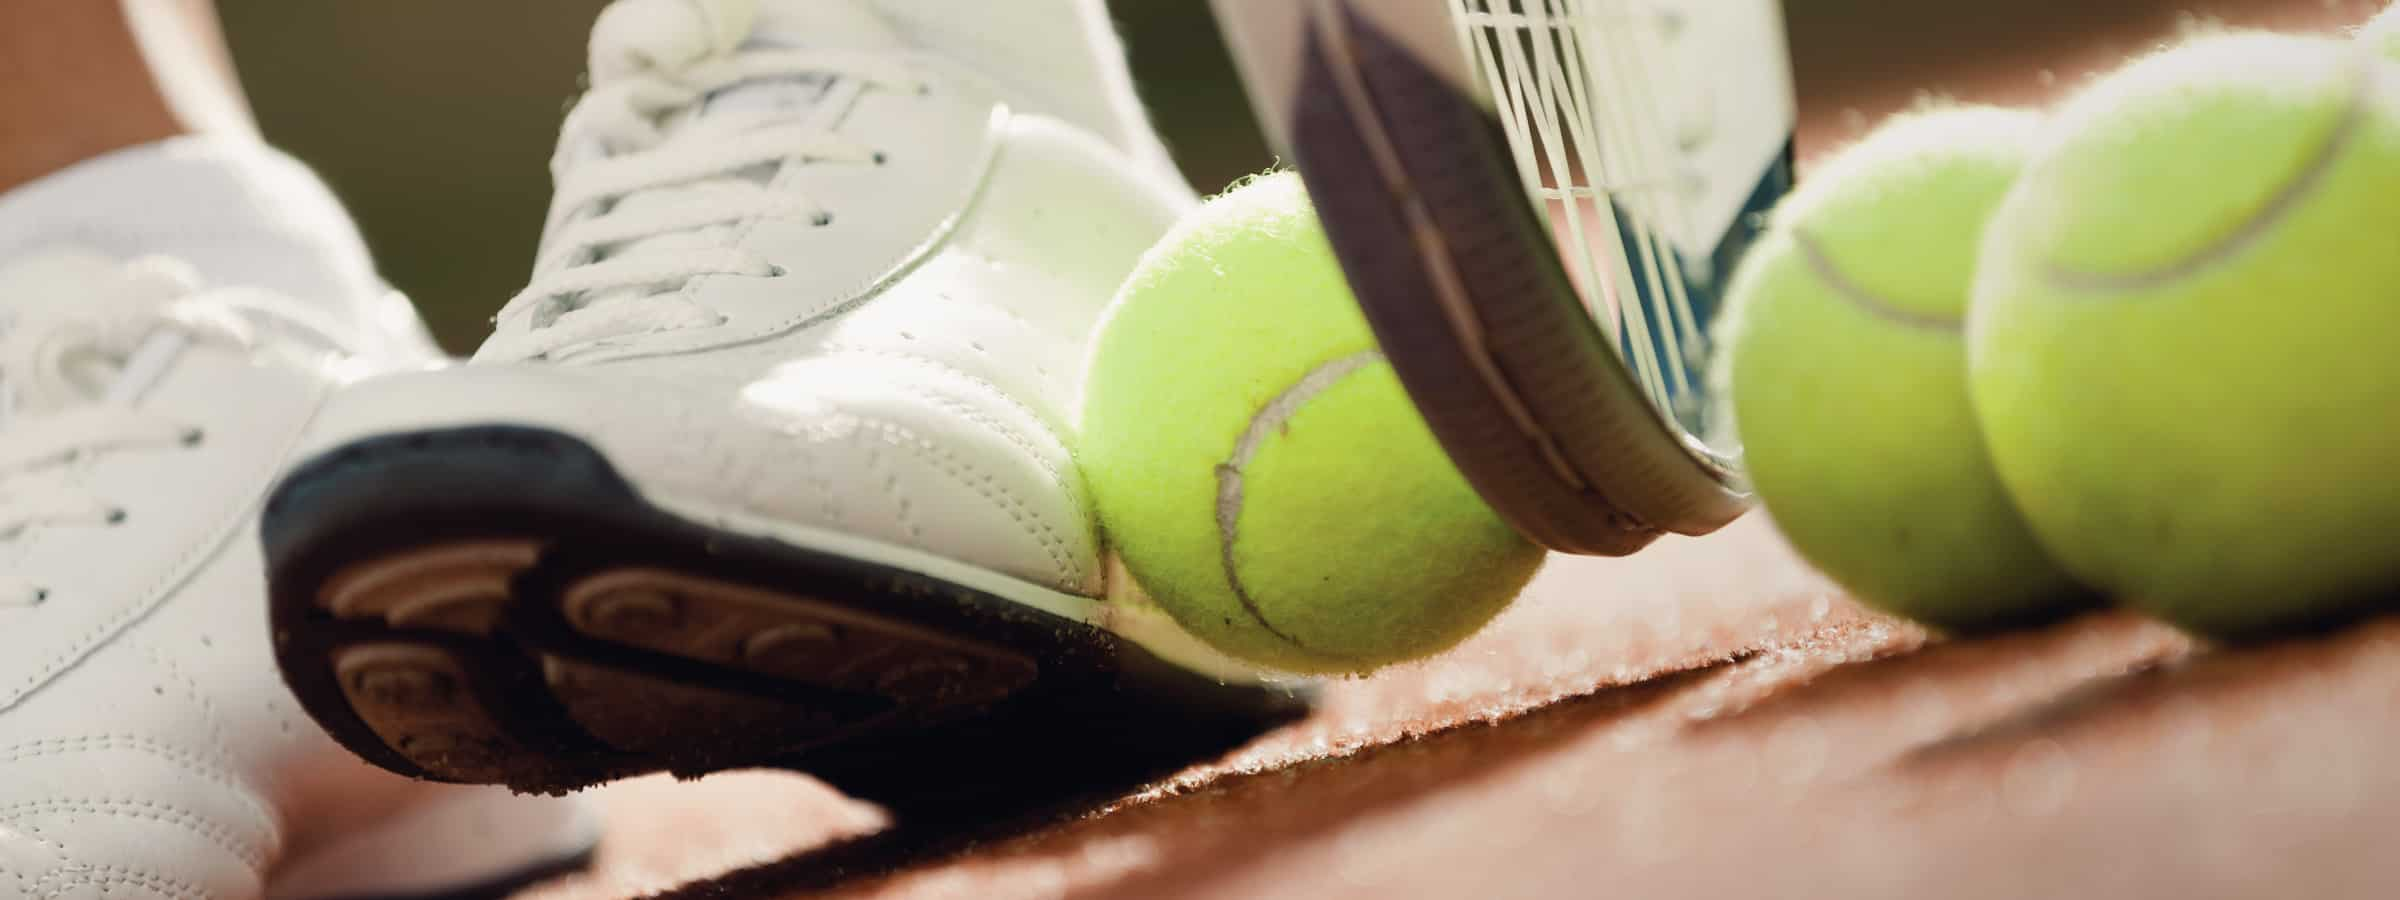 Person picking up tennis ball with shoe